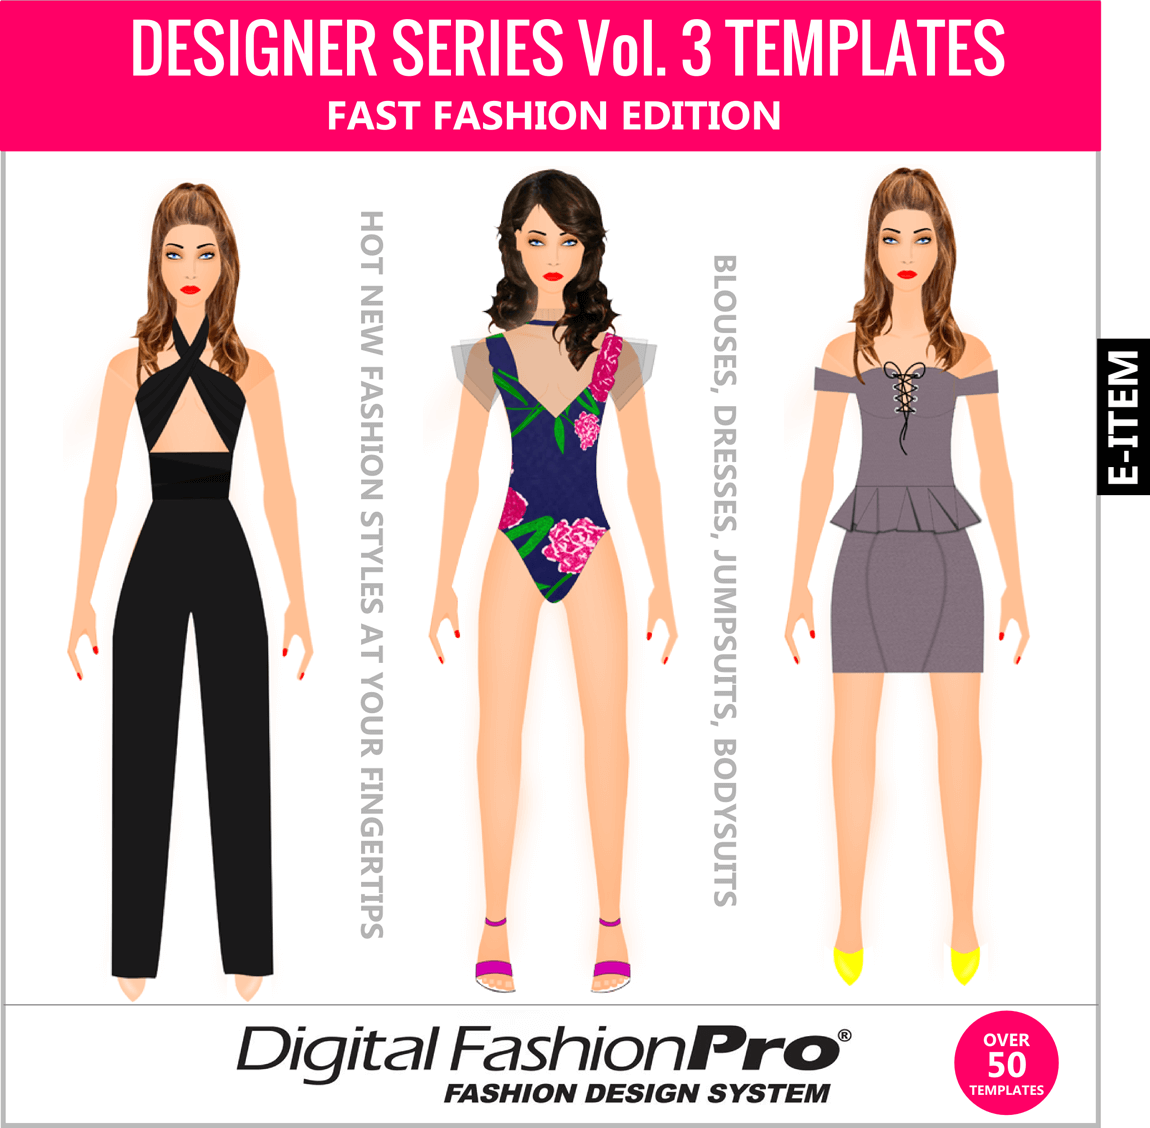 Designer-Series-3-Clothing-Templates---Inspired by - FashionNova - Forever 21 - Shein - Boohoo Style